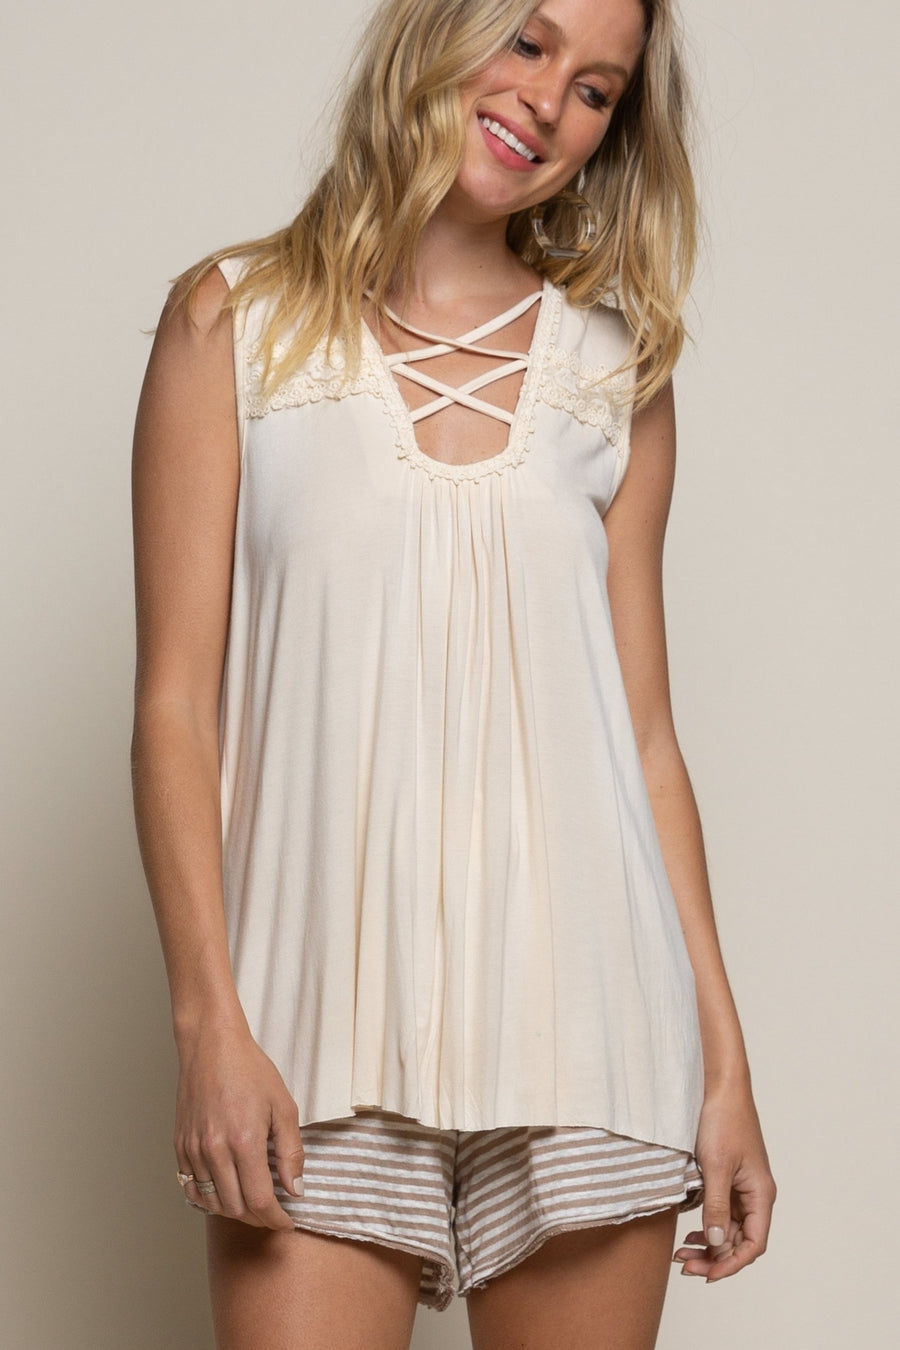 Banana Cream Floral Embroidered Criss Cross Sleeveless Top